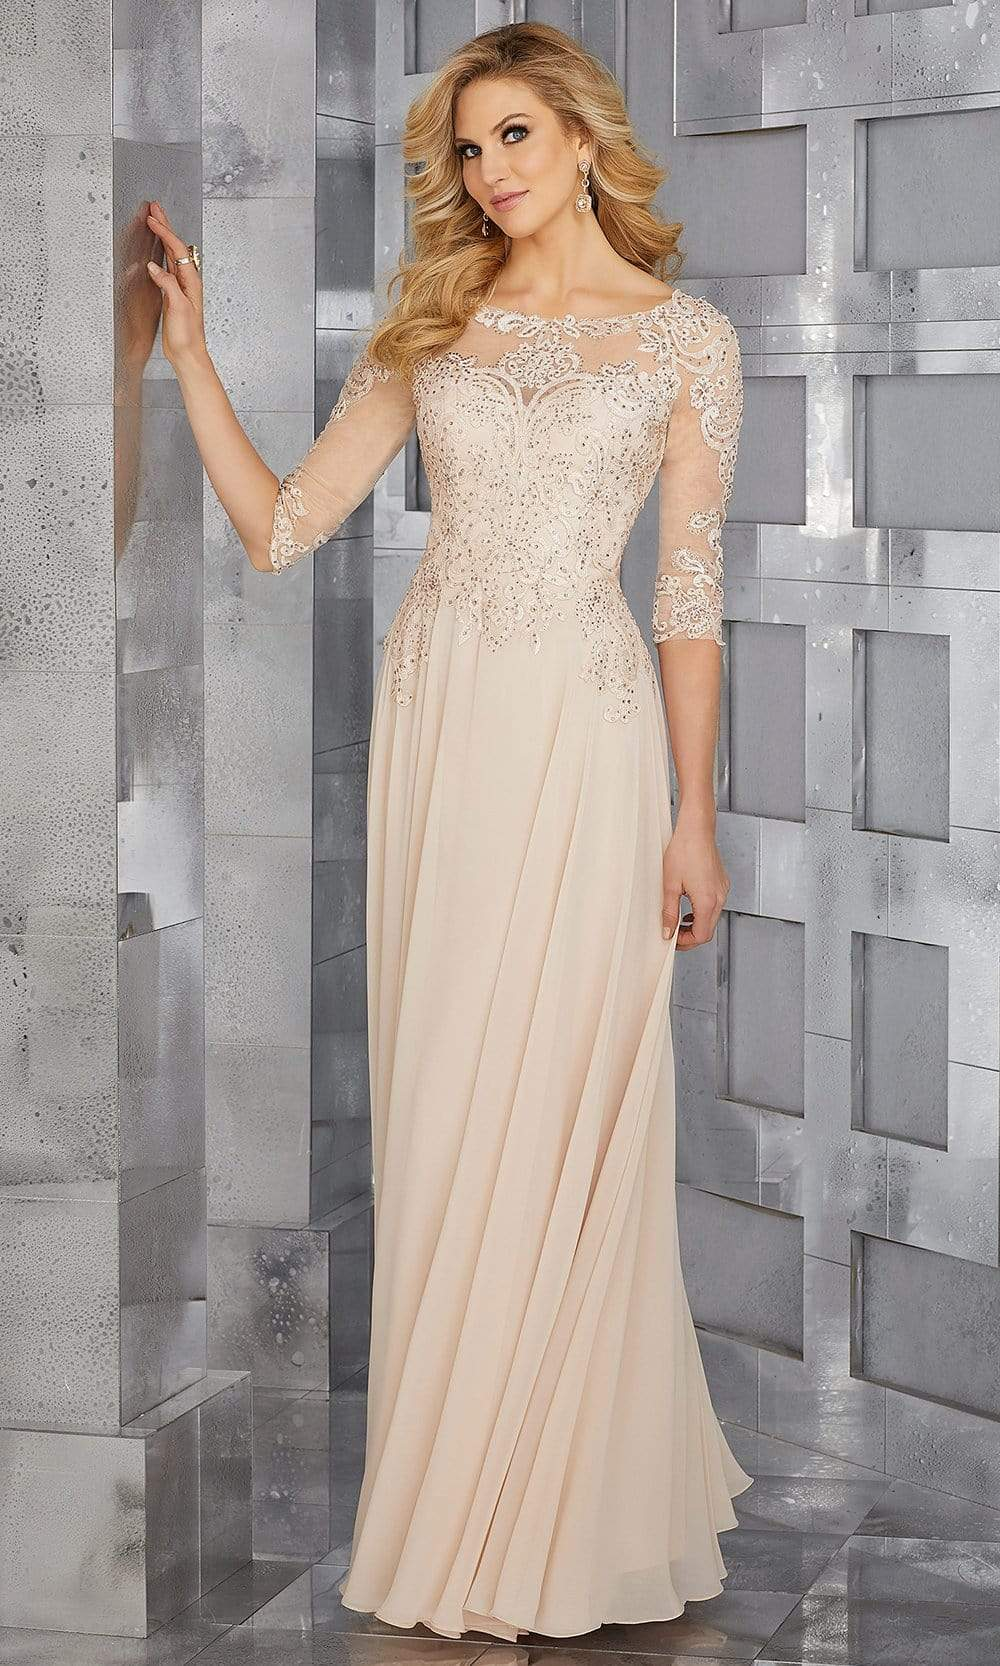 MGNY By Mori Lee - 71622 Embroidered Bateau Chiffon A-line Dress Mother of the Bride Dresses 2 / Champagne